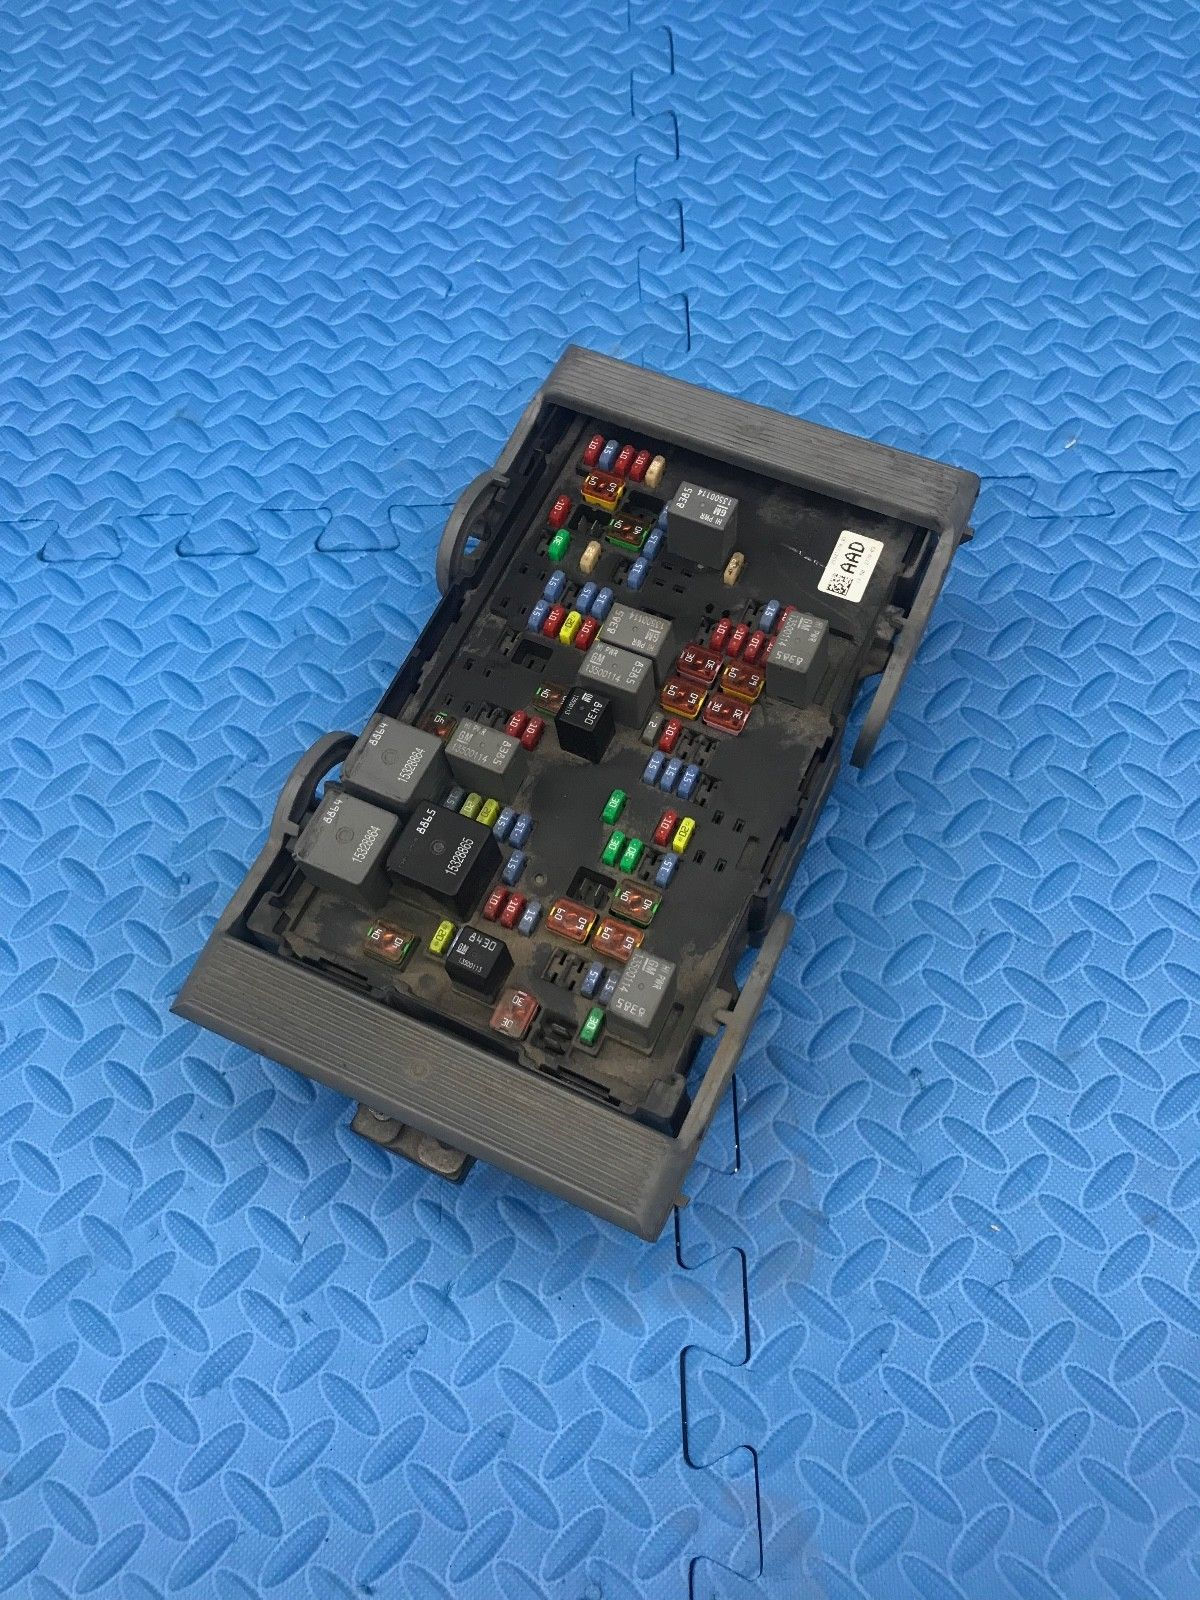 hight resolution of gm gmc truck part wire wiring junction fuse block relay panel box 25941370 01 does not